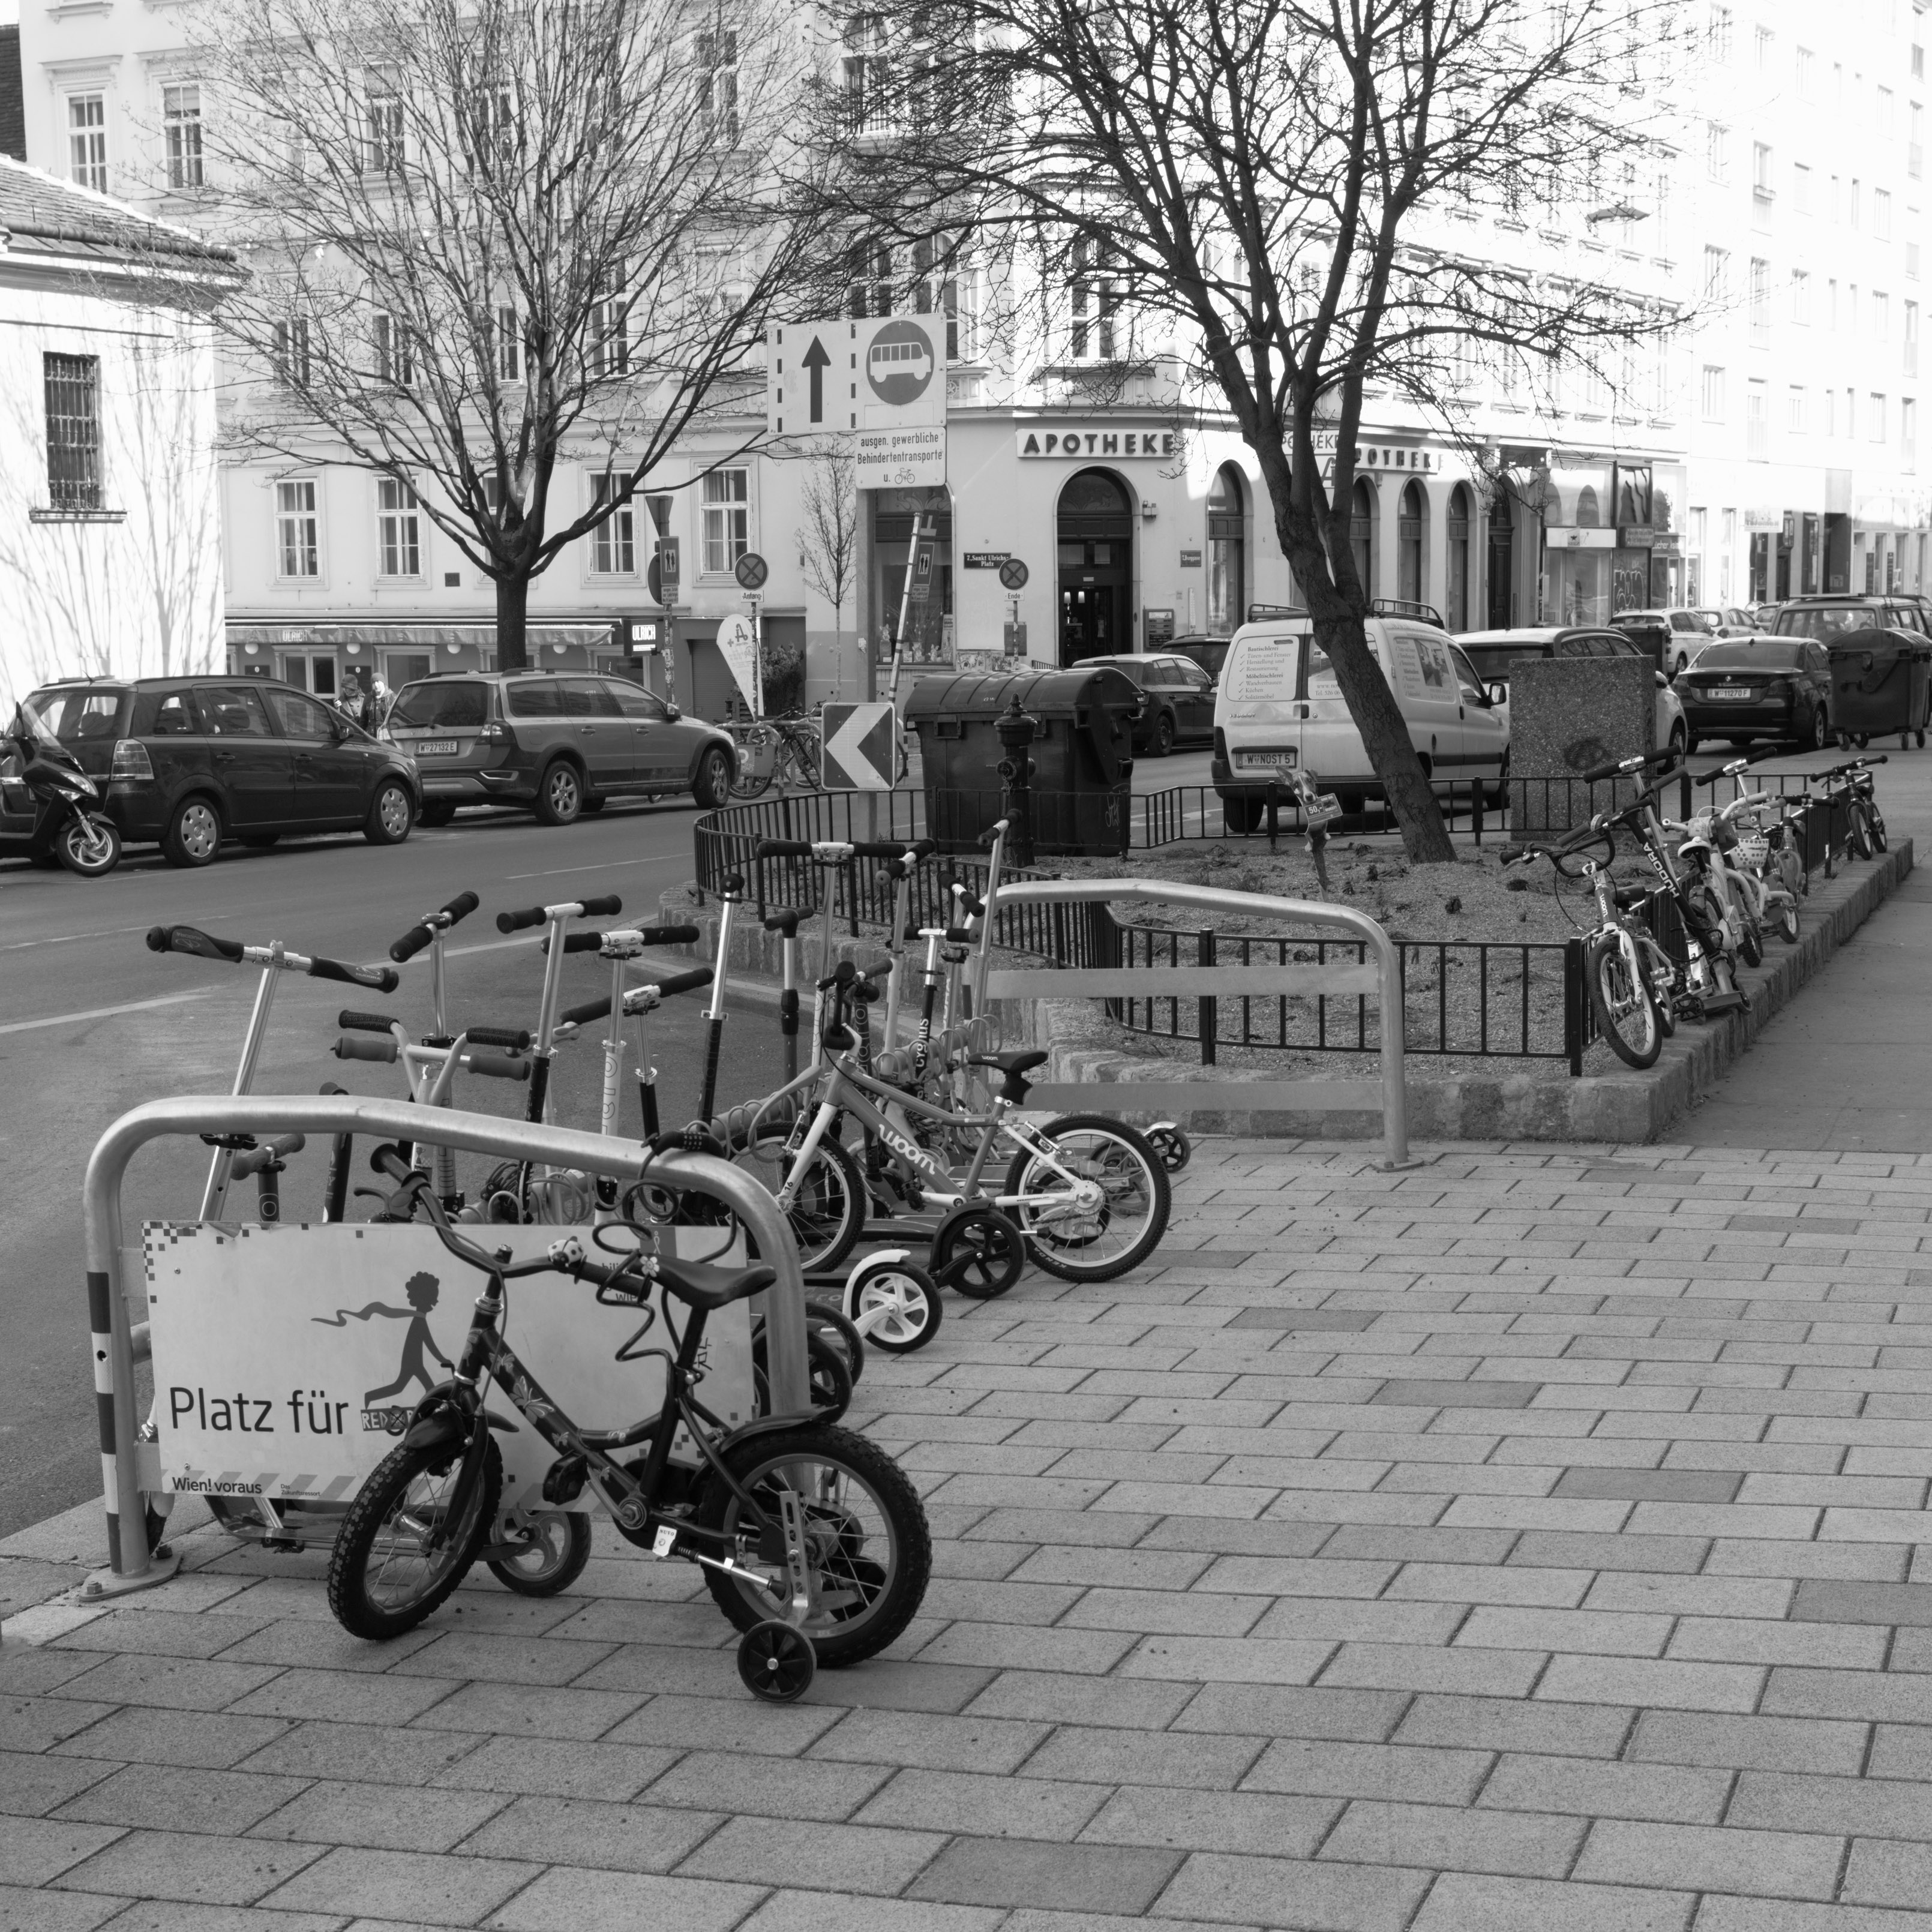 Modern parking place at Burggasse (Neubau, Austria) with Leica M Monochrom (Leica Summilux-M 35mm f/1.4 ASPH.) by Magnus L Andersson (photography.anderssoneklund.se) at 2018-03-22 12:16:16